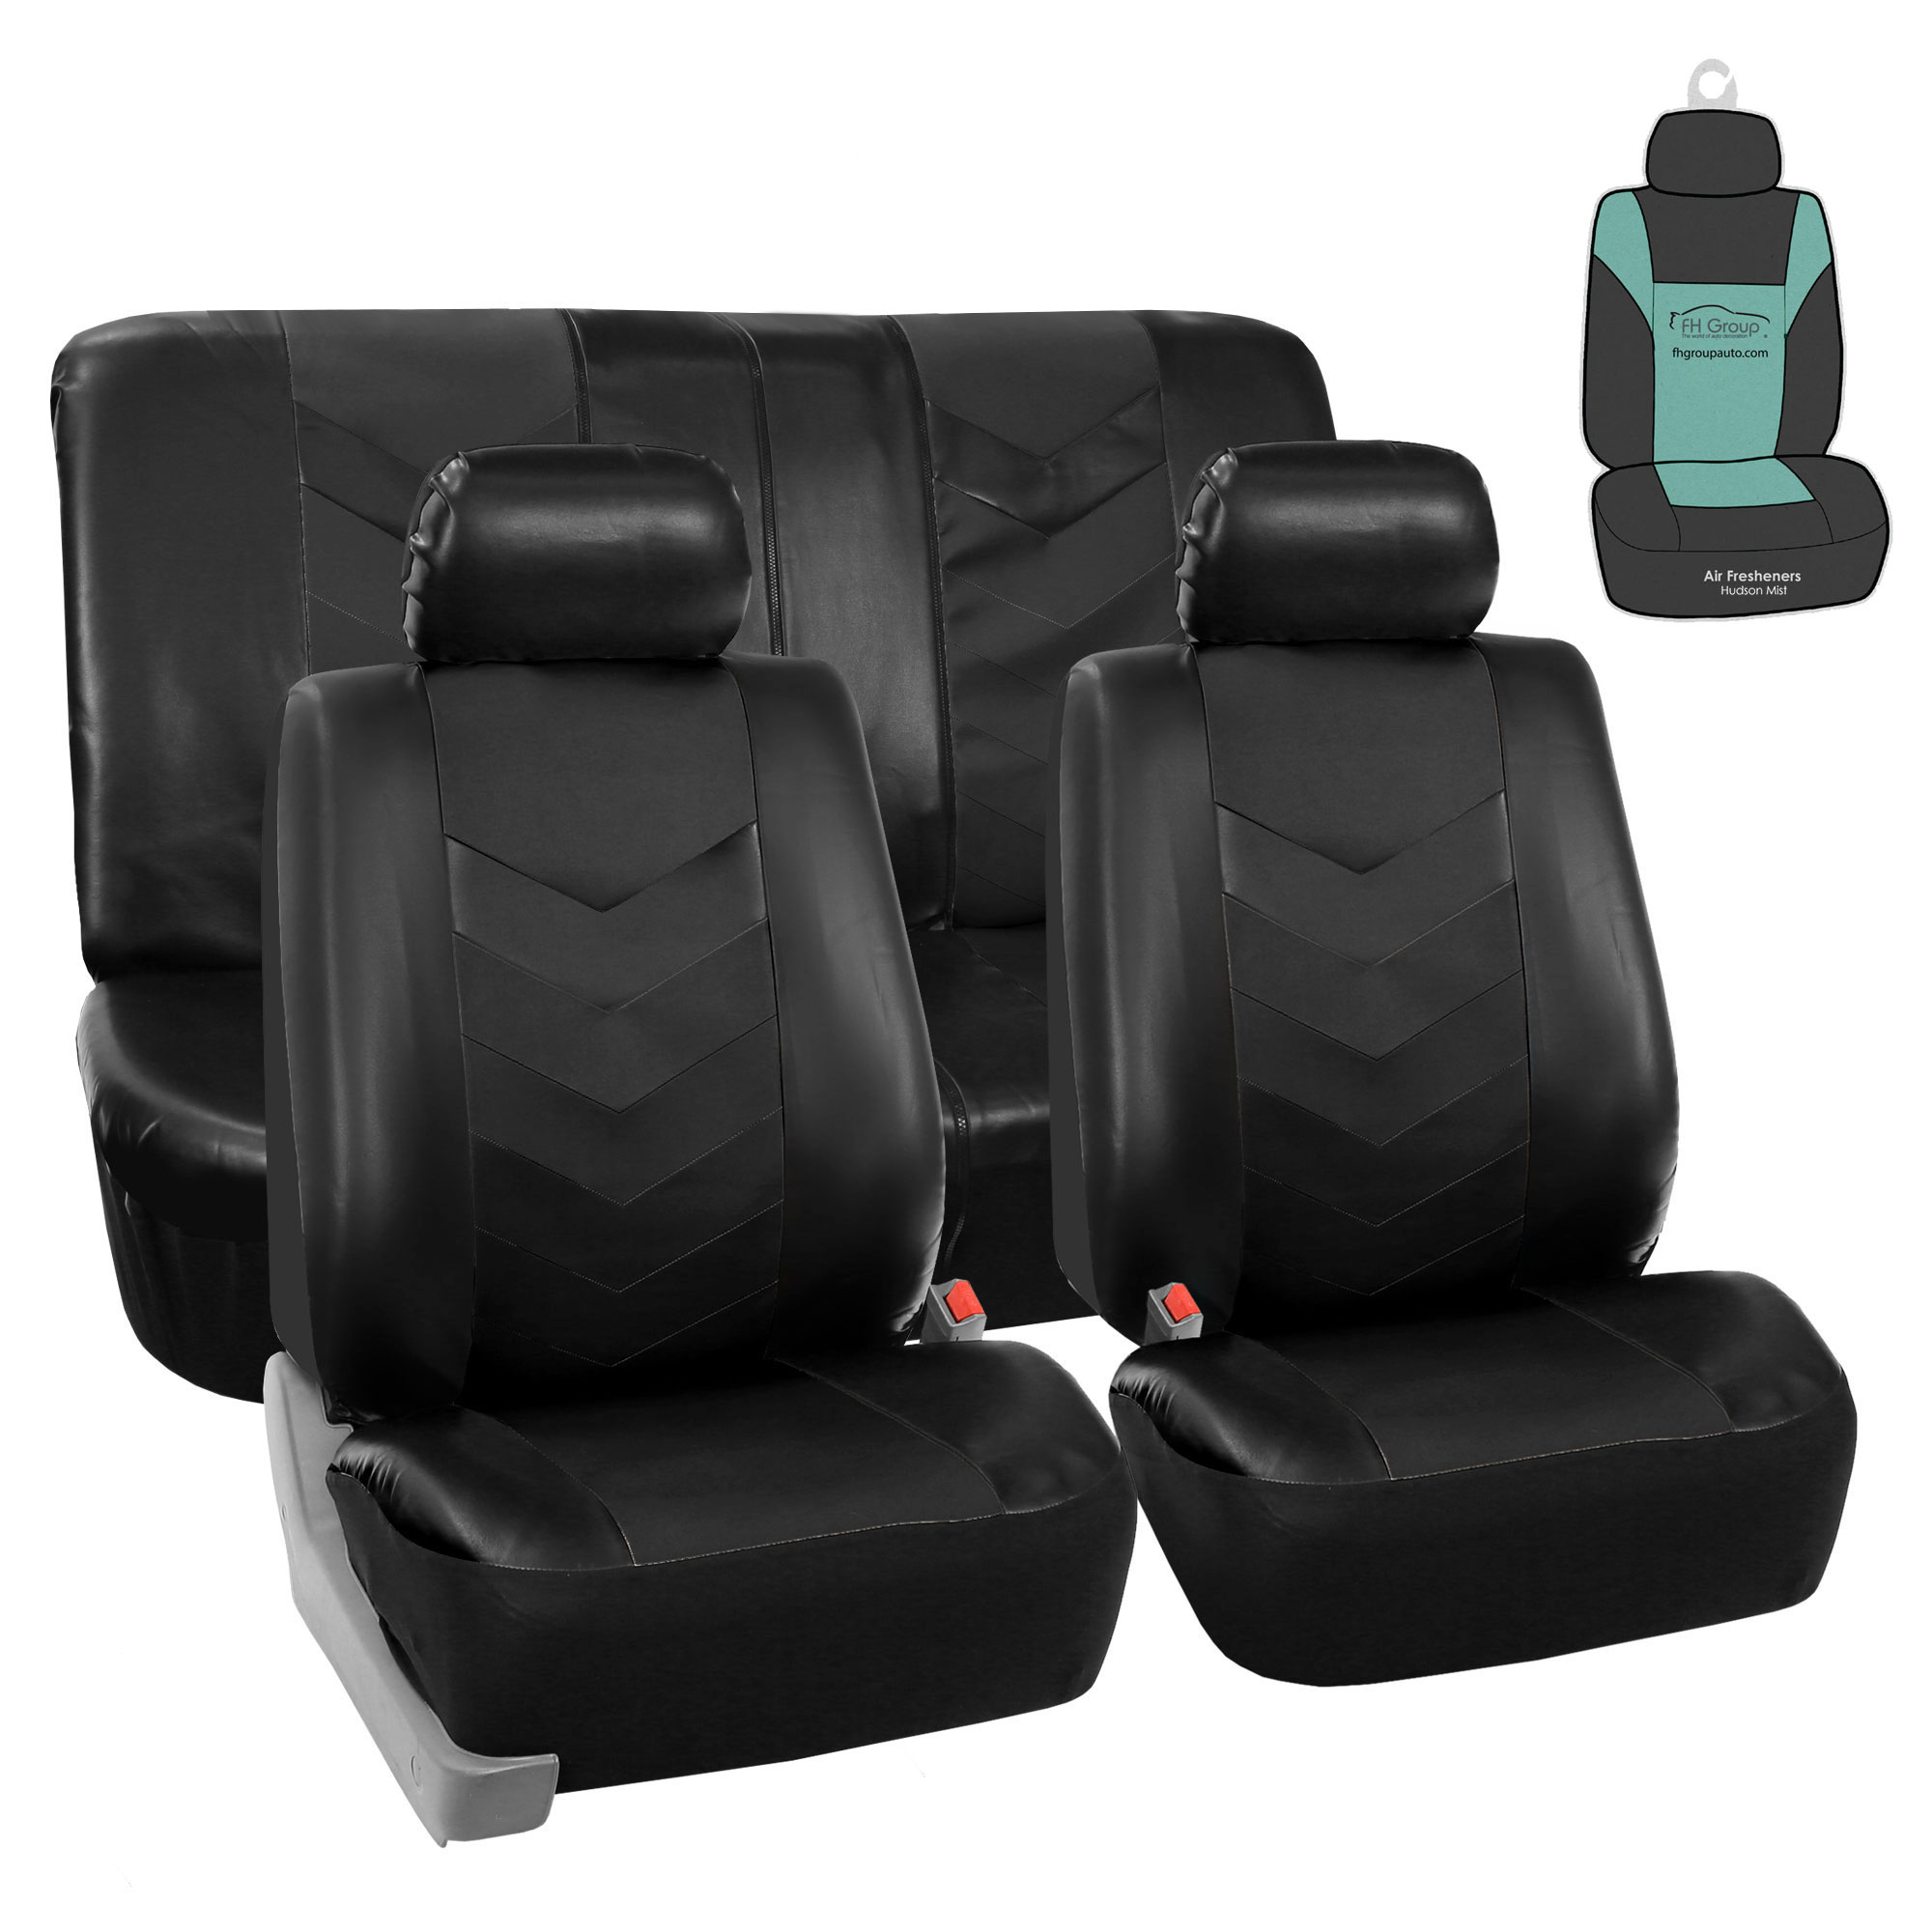 FH Gorup PU Leather Seat Covers For Auto Car SUV Solid Black w/ Accessories / Free Gift